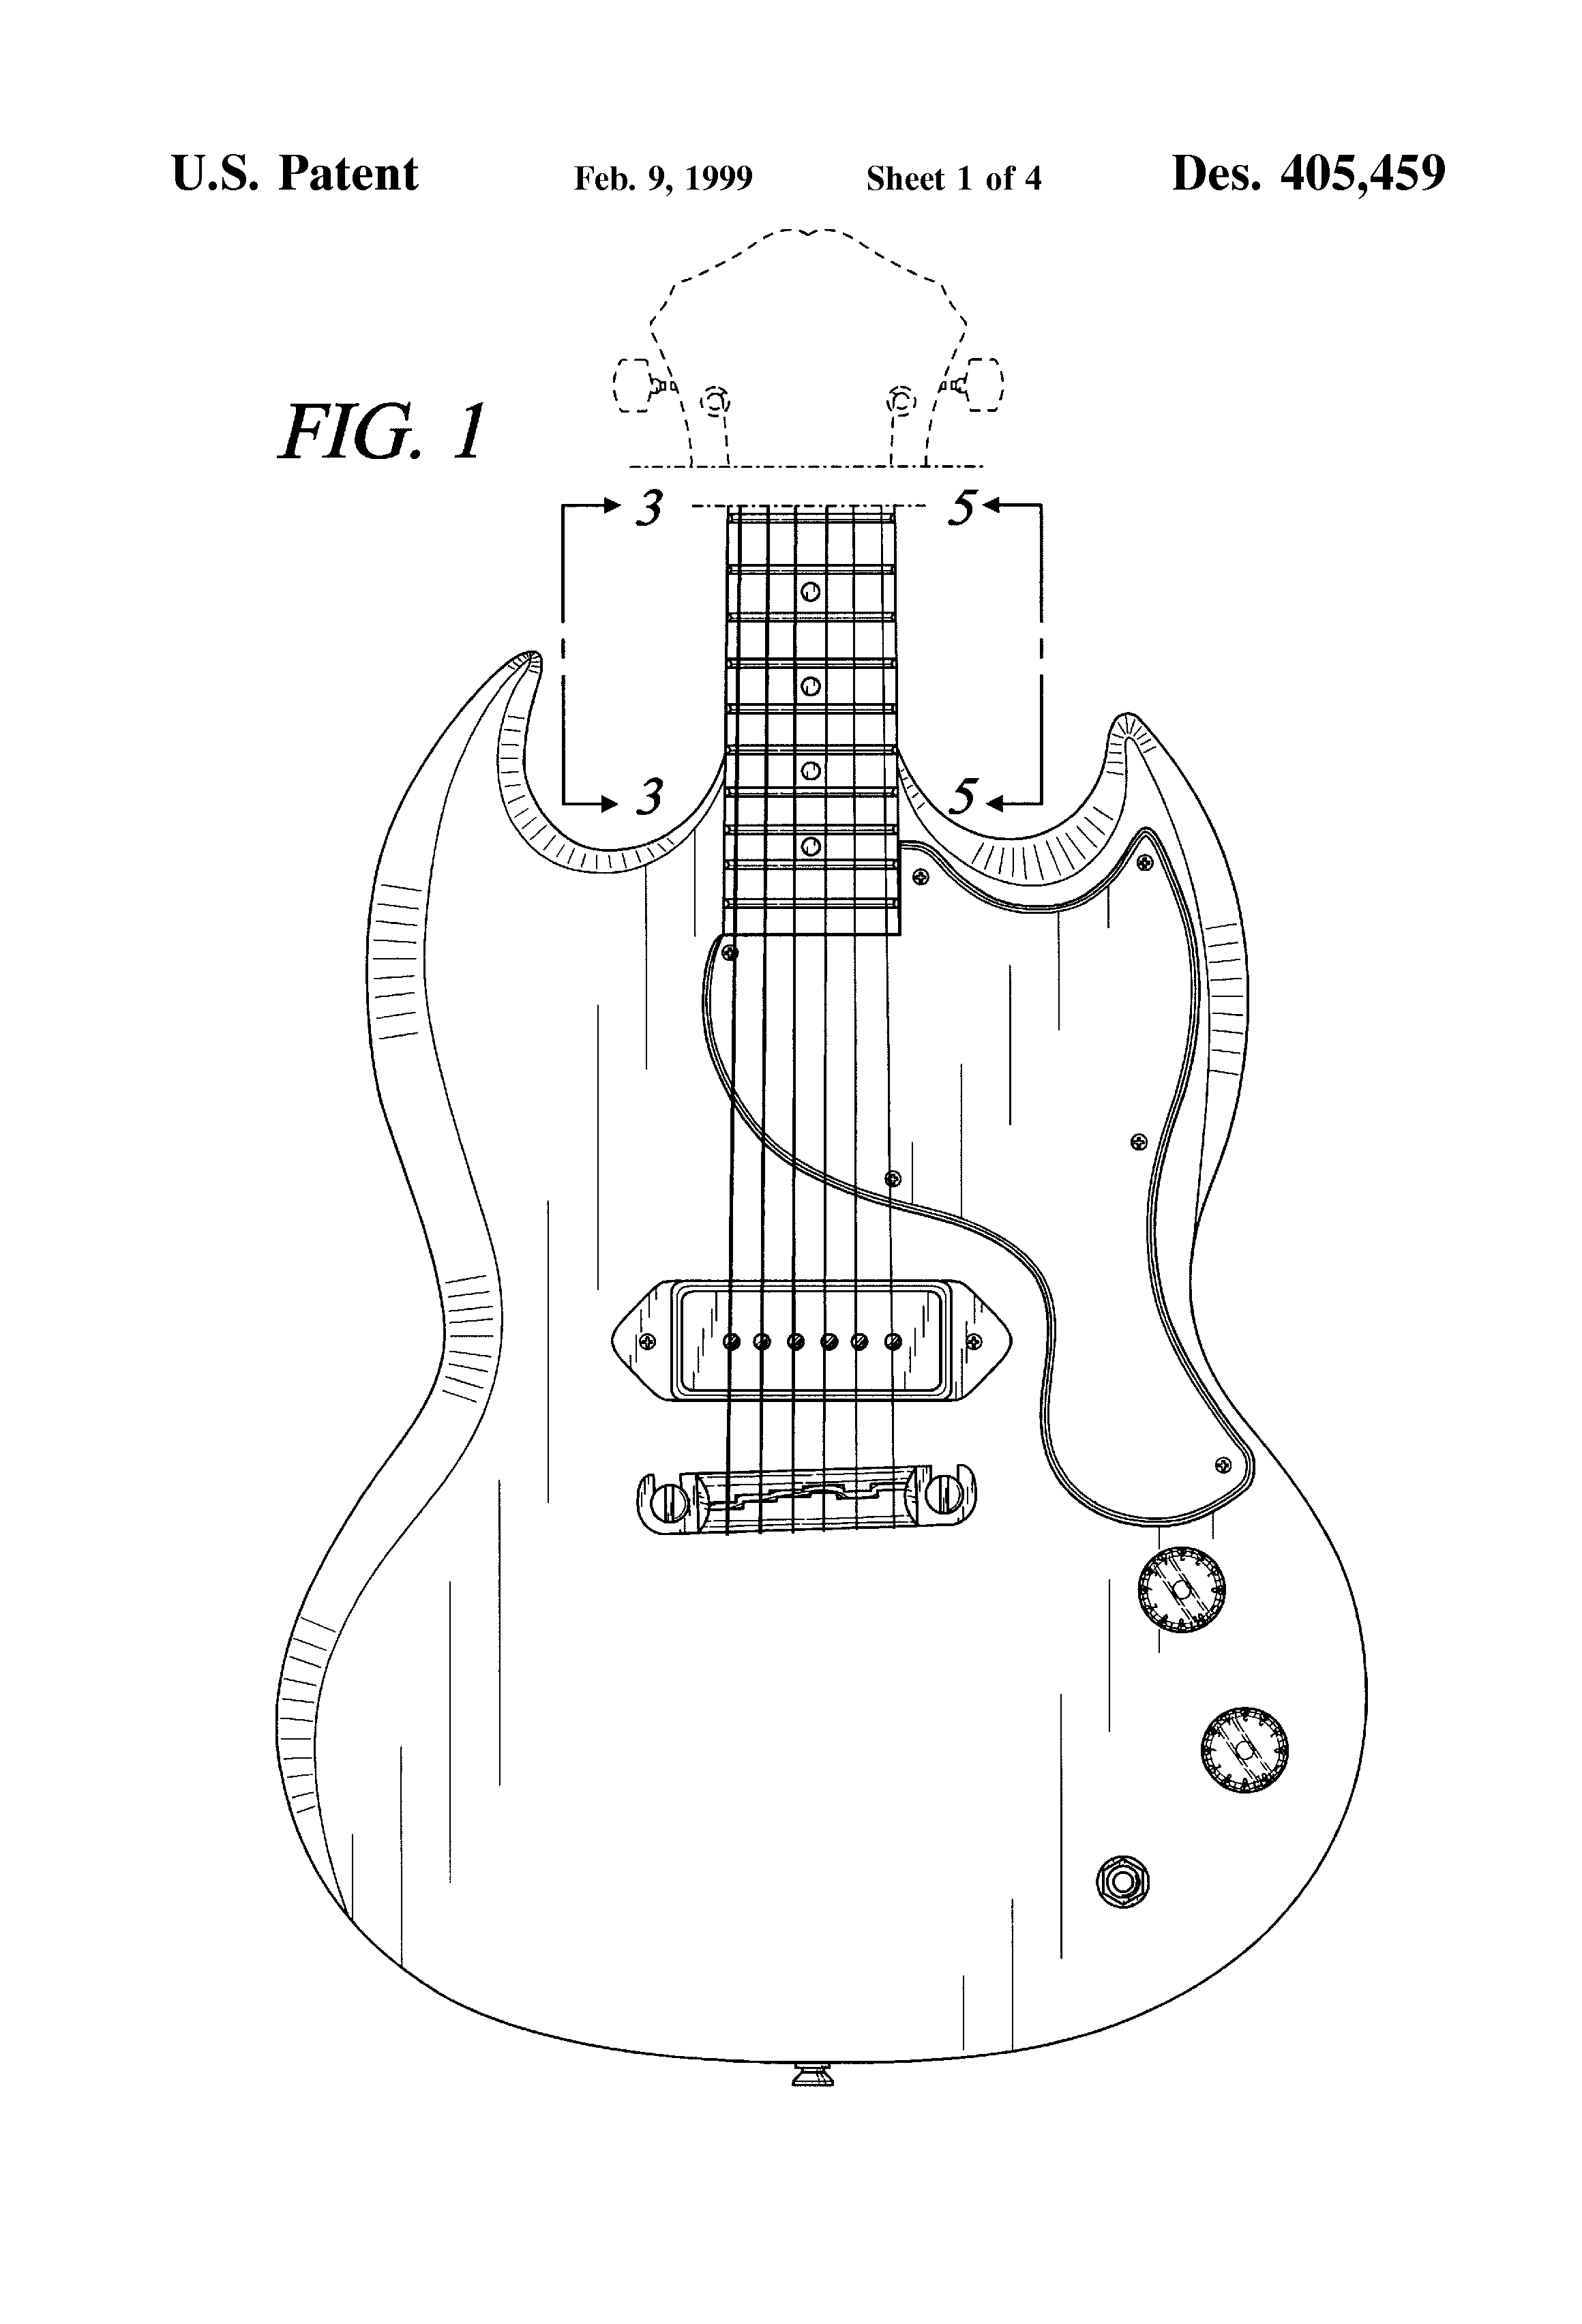 patent usd405459 - electric guitar body